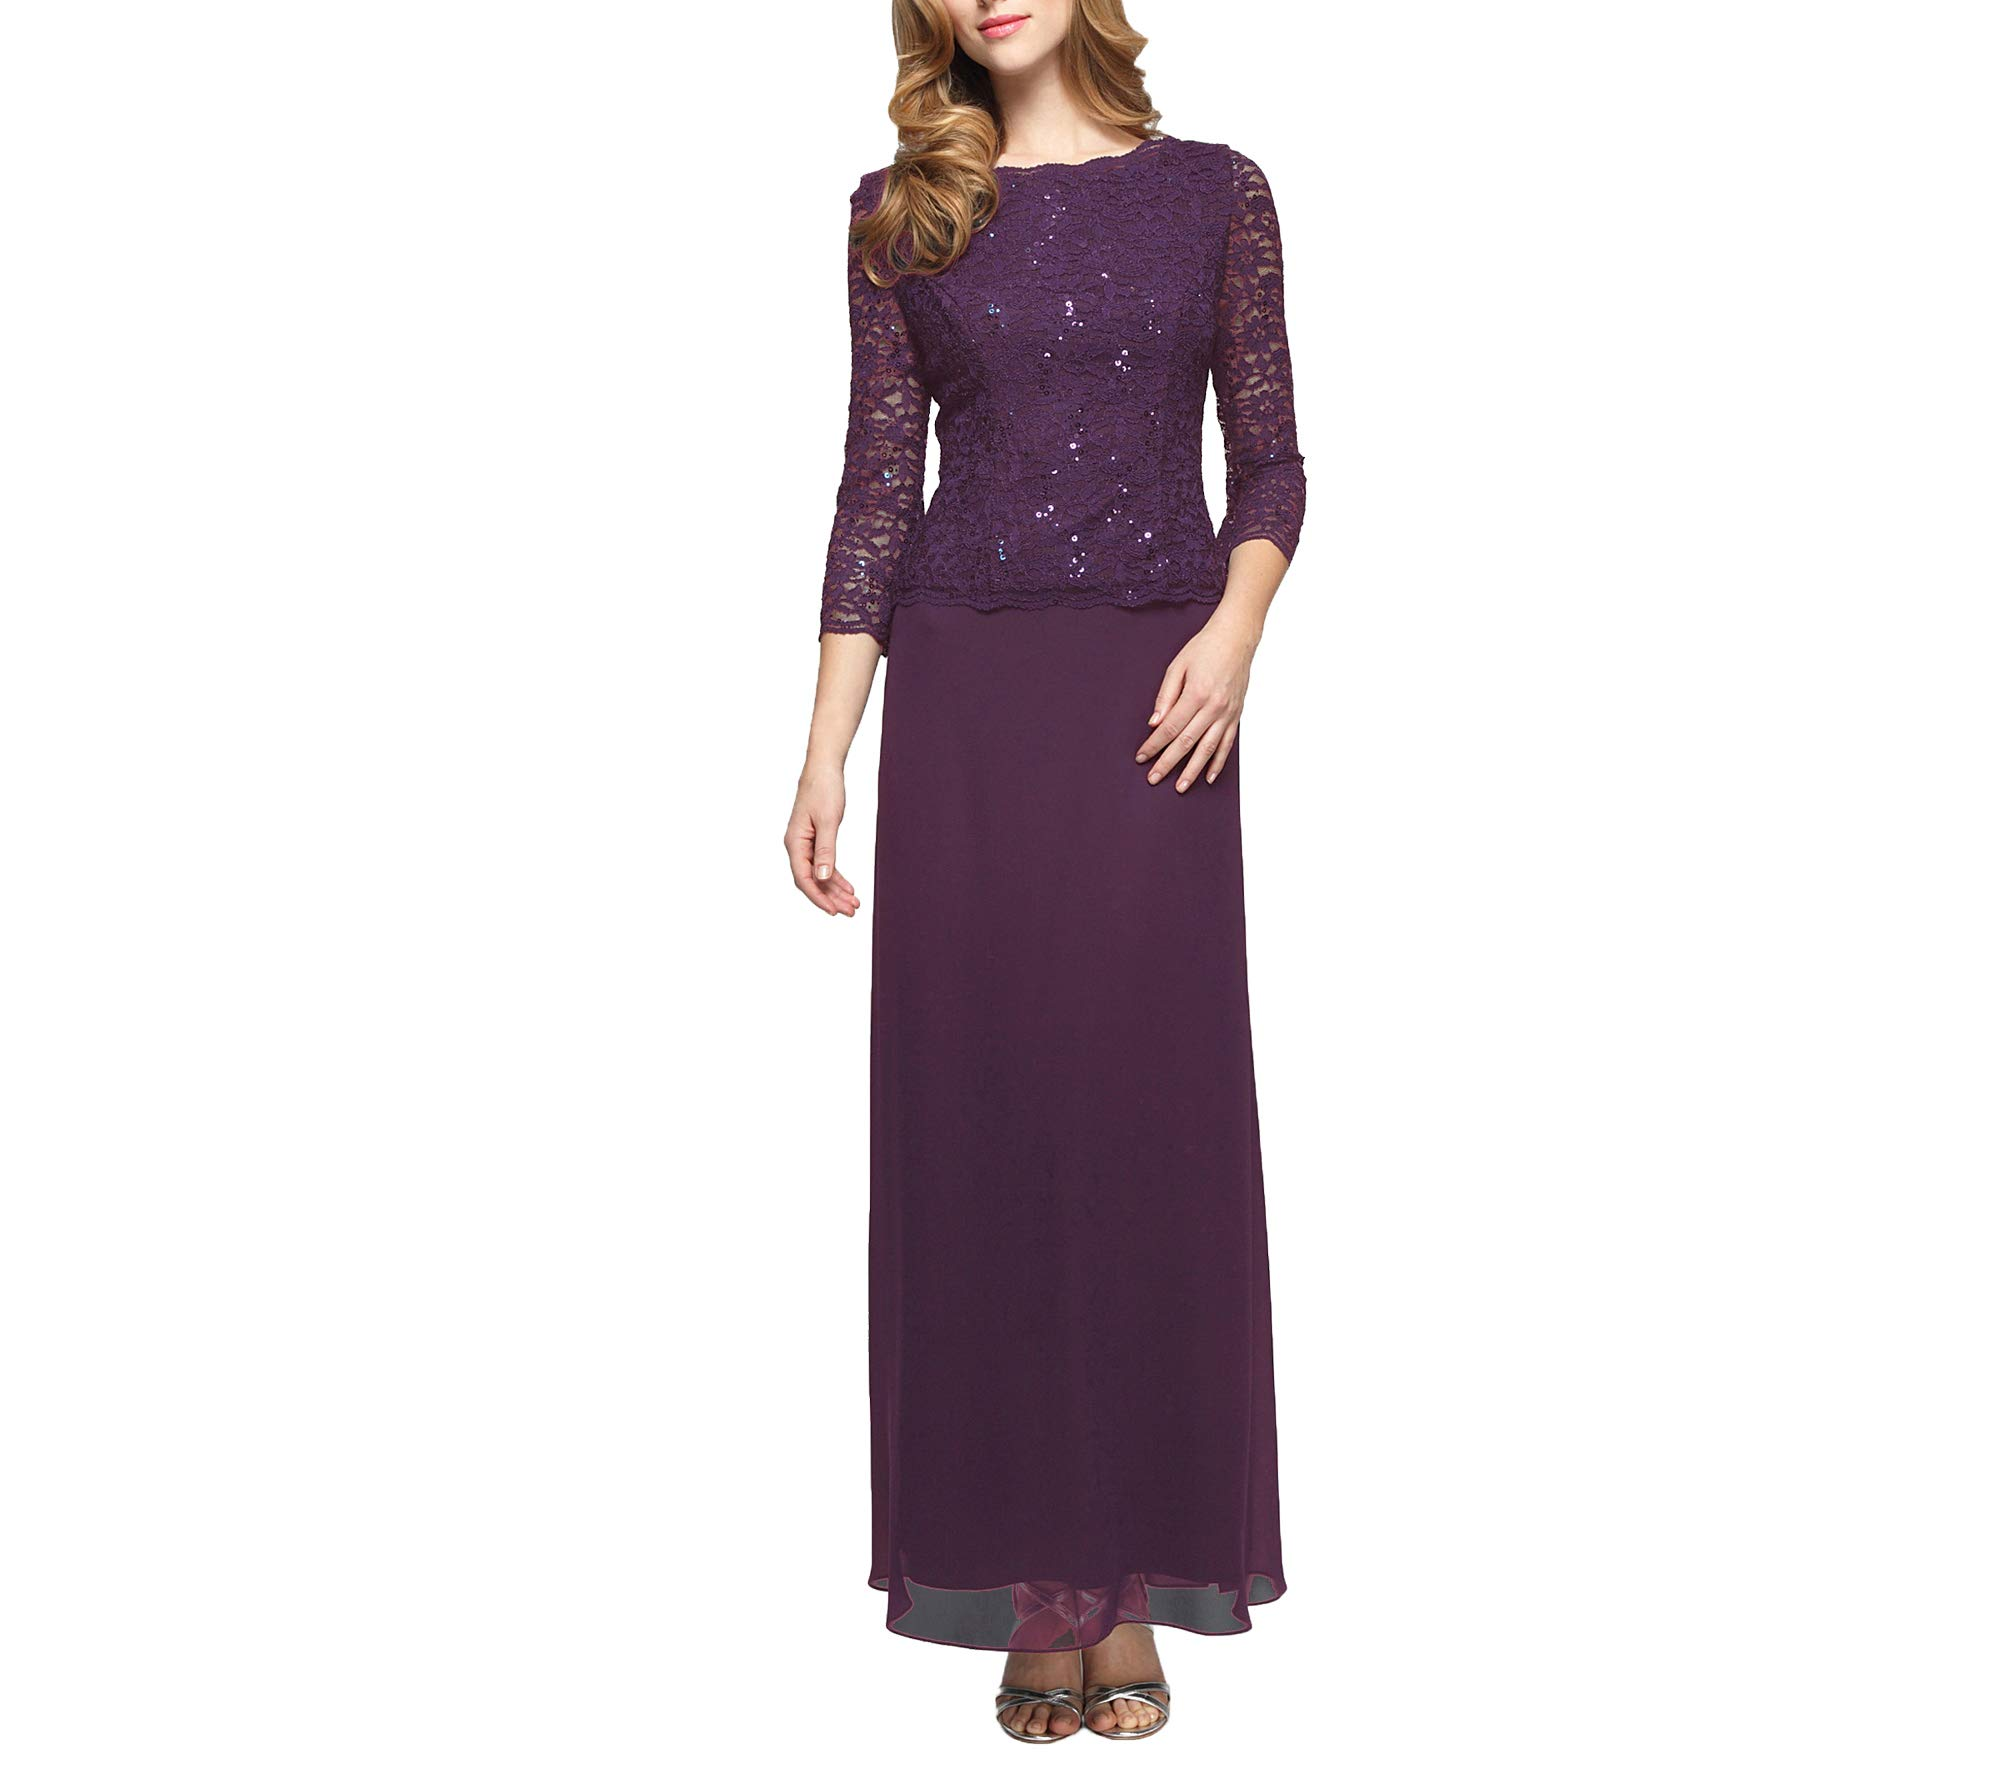 Mother Of The Bride Dresses - Women's Long Mock Dress